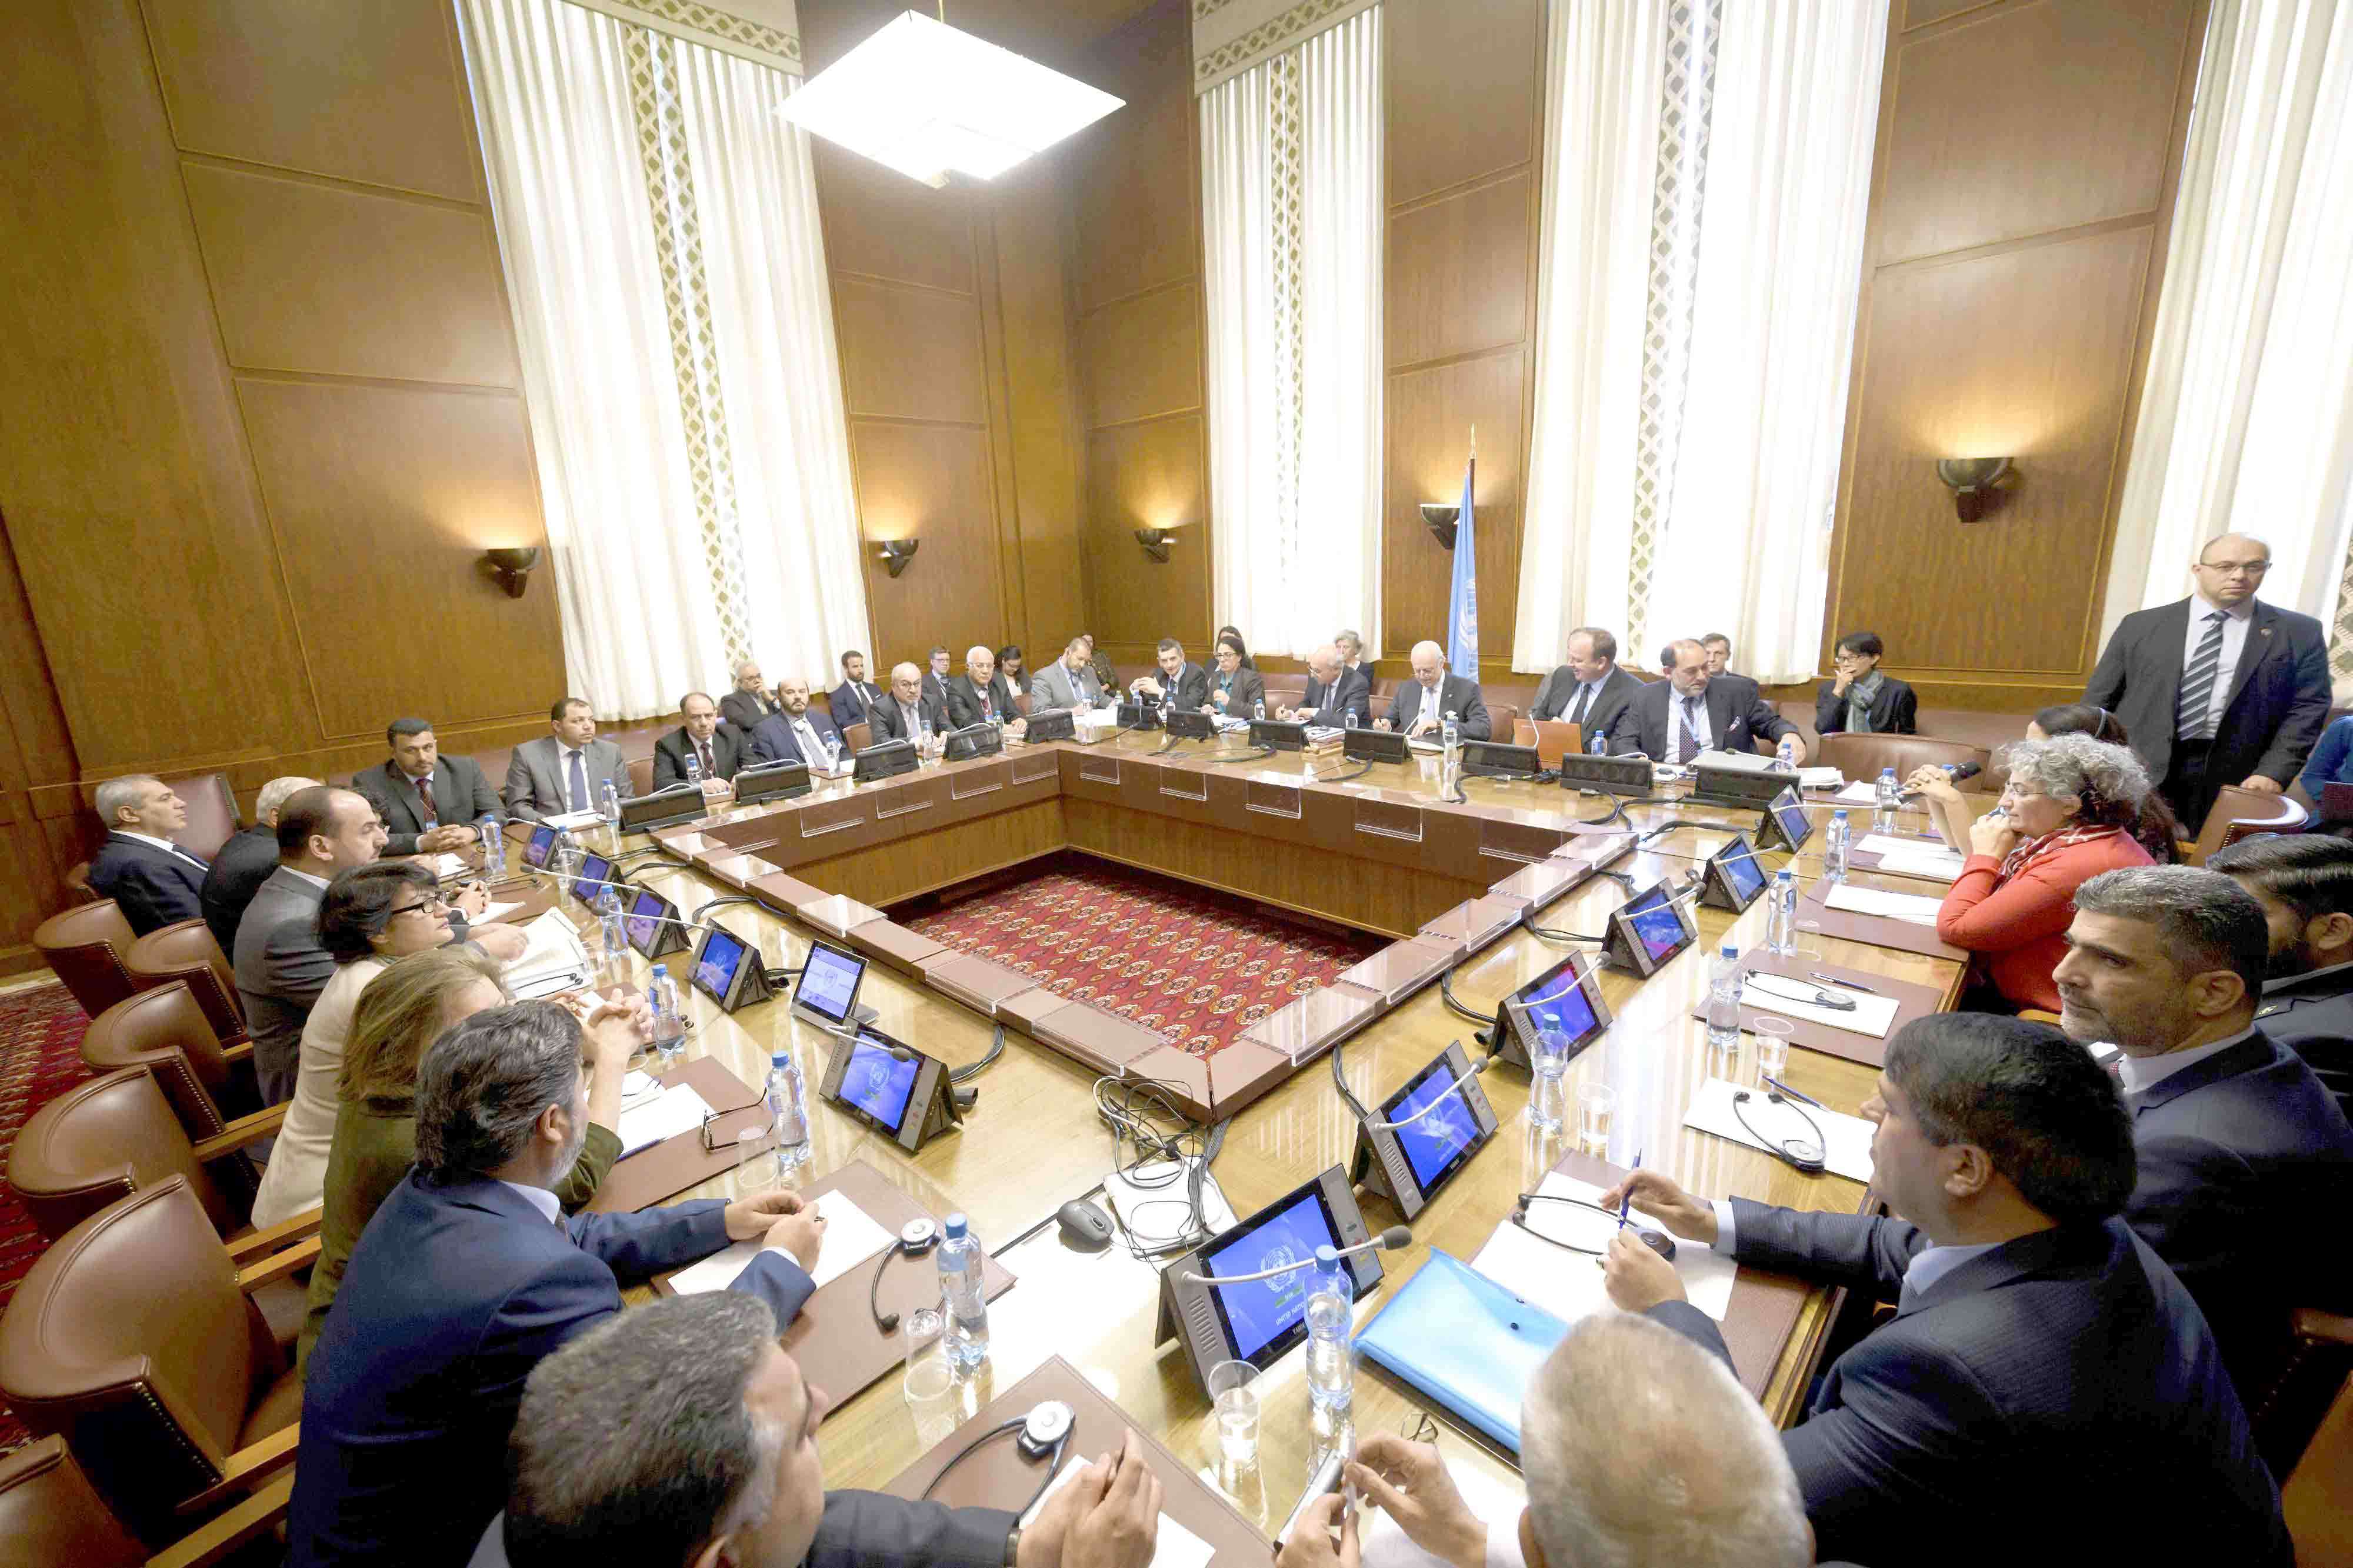 A 2017 file photo shows a meeting of a delegation of Syria's main opposition High Negotiations Committee with the UN special envoy for Syria during peace talks in Geneva. (AFP)